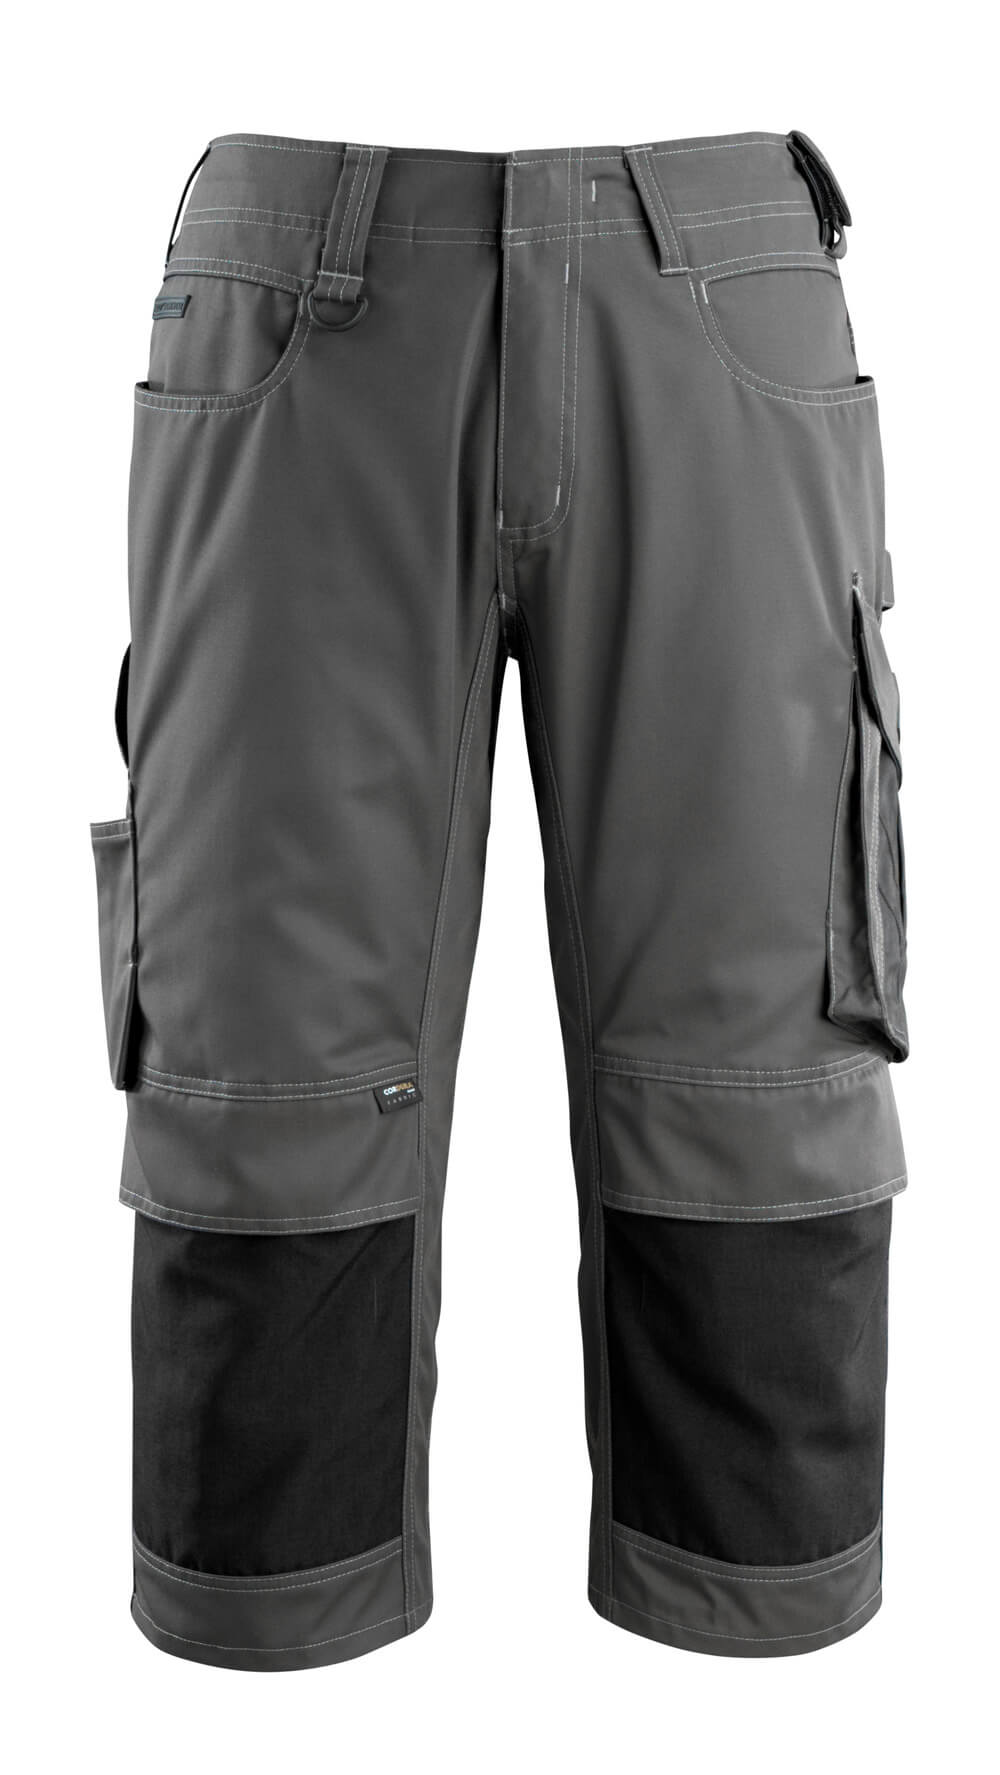 14149-442-1809 ¾ Length Pants with kneepad pockets - dark anthracite/black